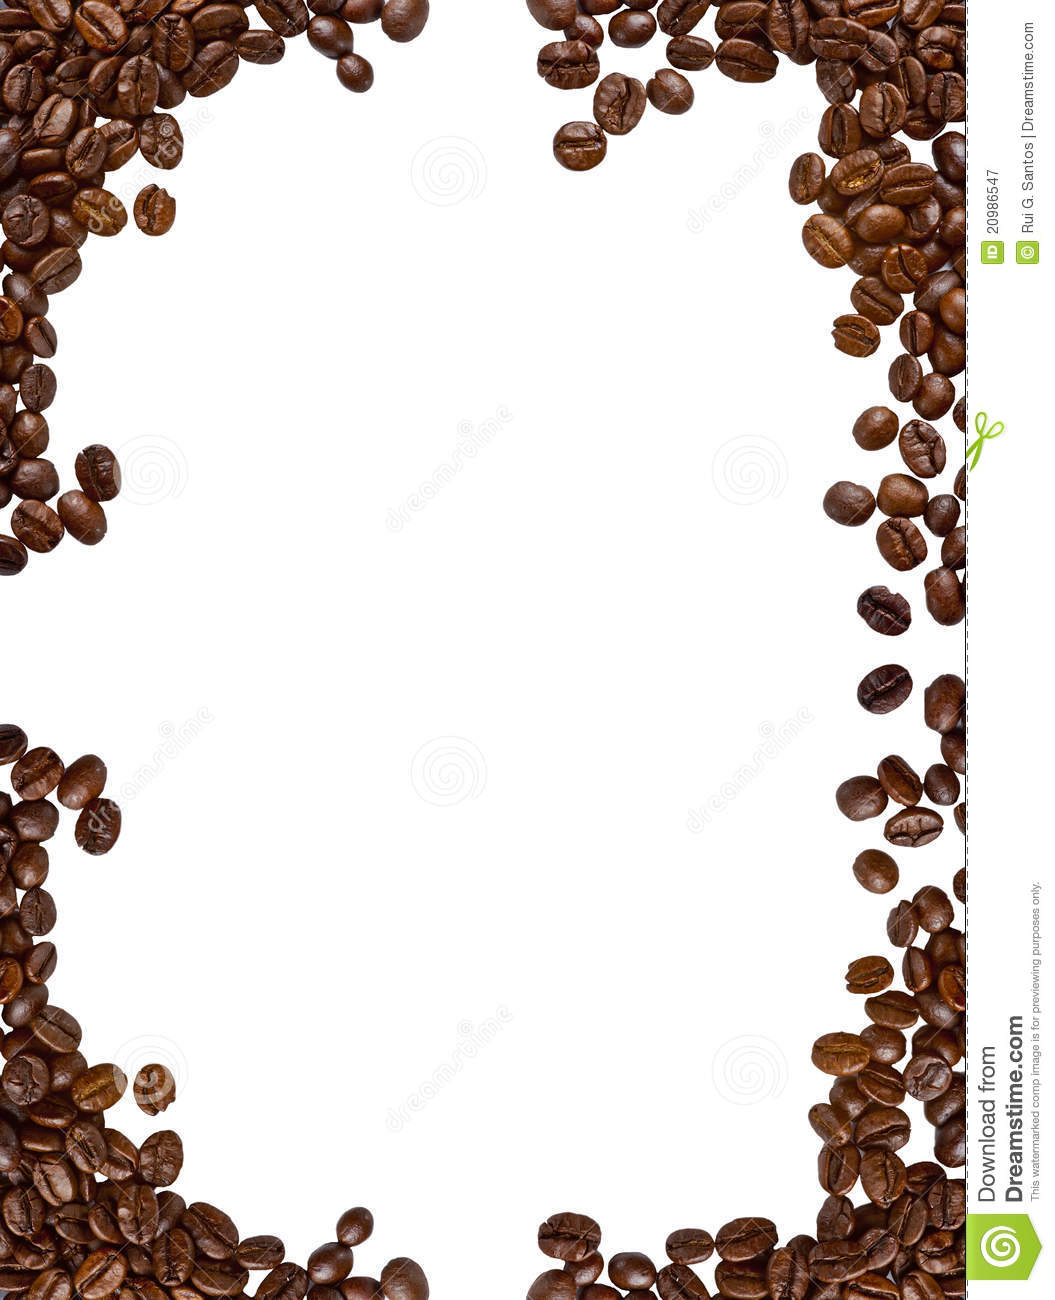 Coffee Bean Border ~ Coffee frame royalty free stock photography image